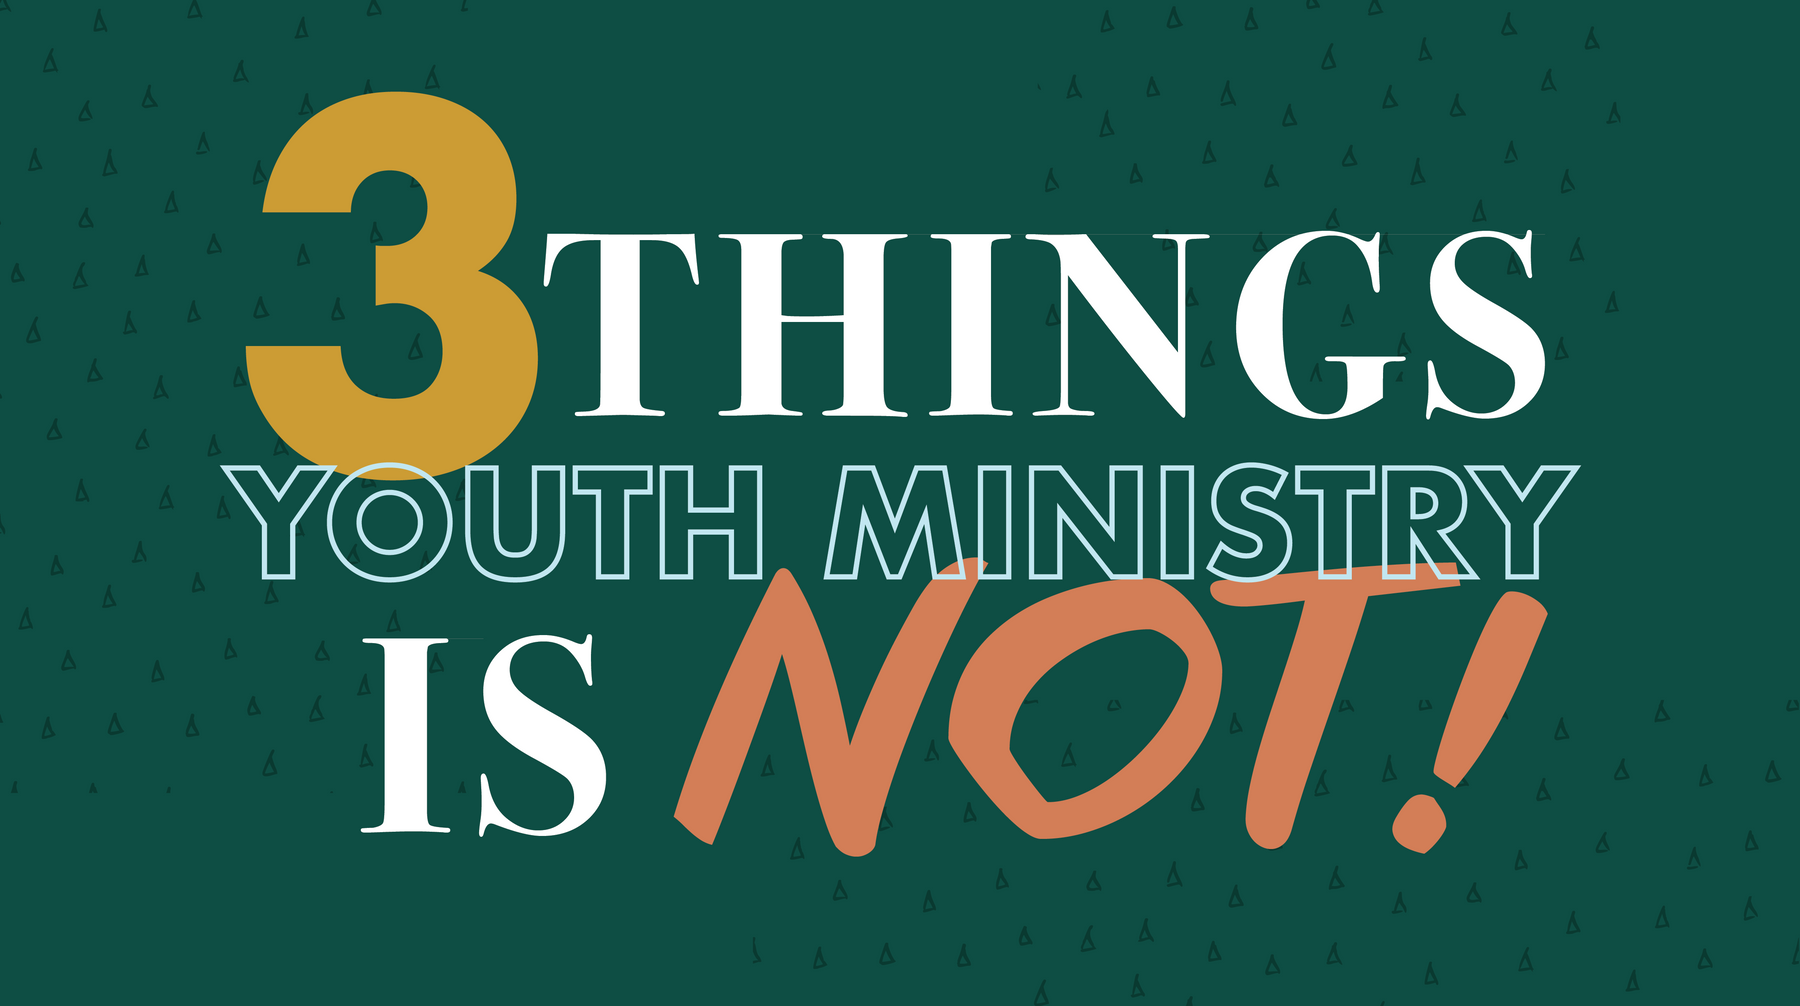 3 Things Youth Ministry is NOT!